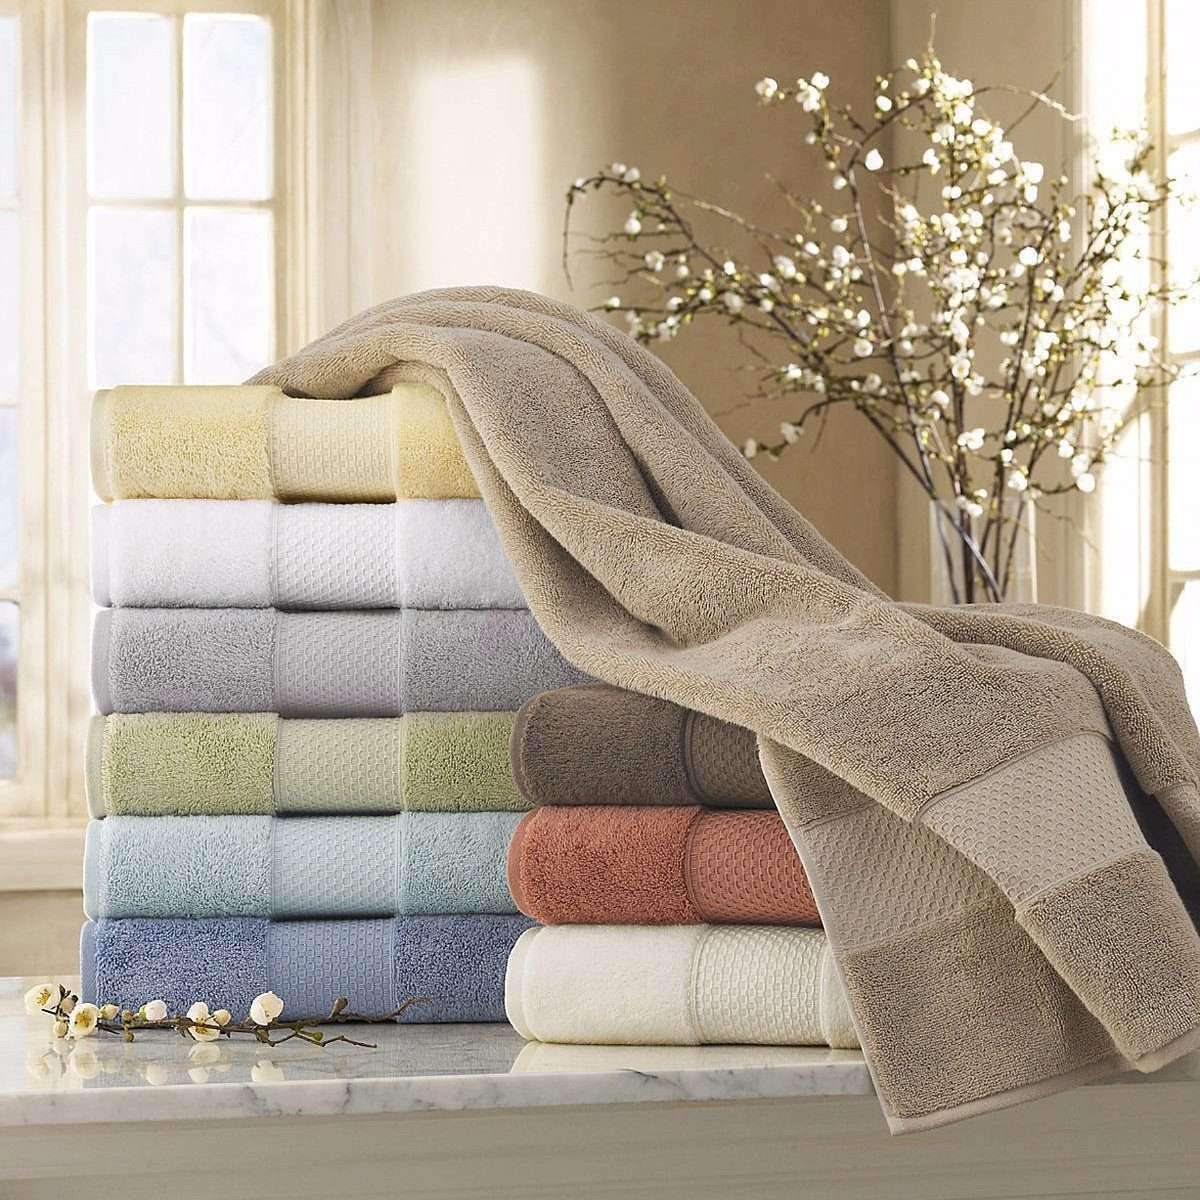 Limited Edition Mariabella Luxury Cotton Turkish Towels